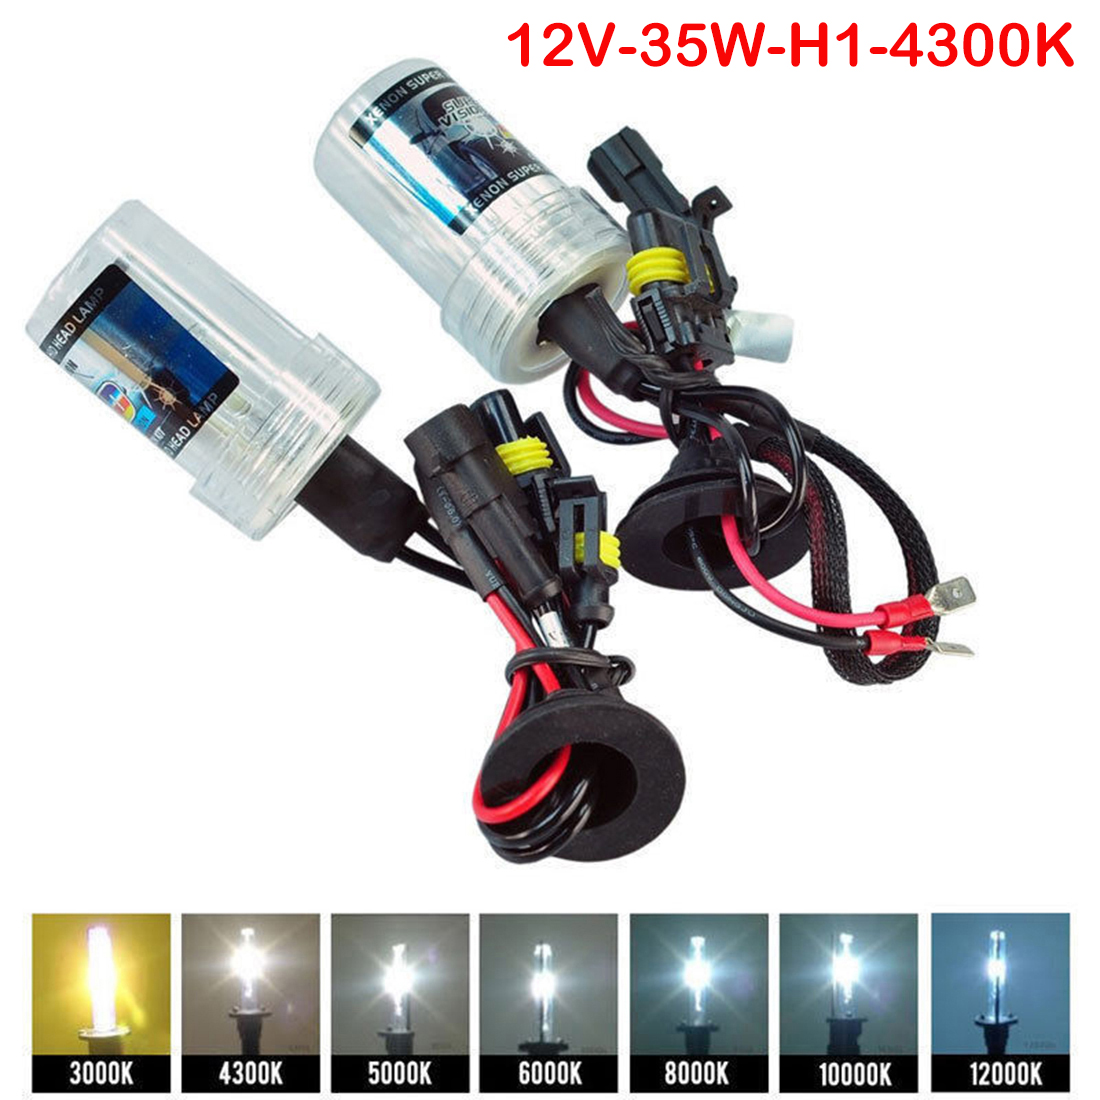 Tonewan 2pcs 35W Xenon HID Bulb Headlight Lamp Auto Car head light H1 H4 H11 4300K 5000K 6000K 8000K Car Auto Replacement 2pcs 6000k car head light replacement xenon hid kit 880 car headlight 35w bulb lamp truck